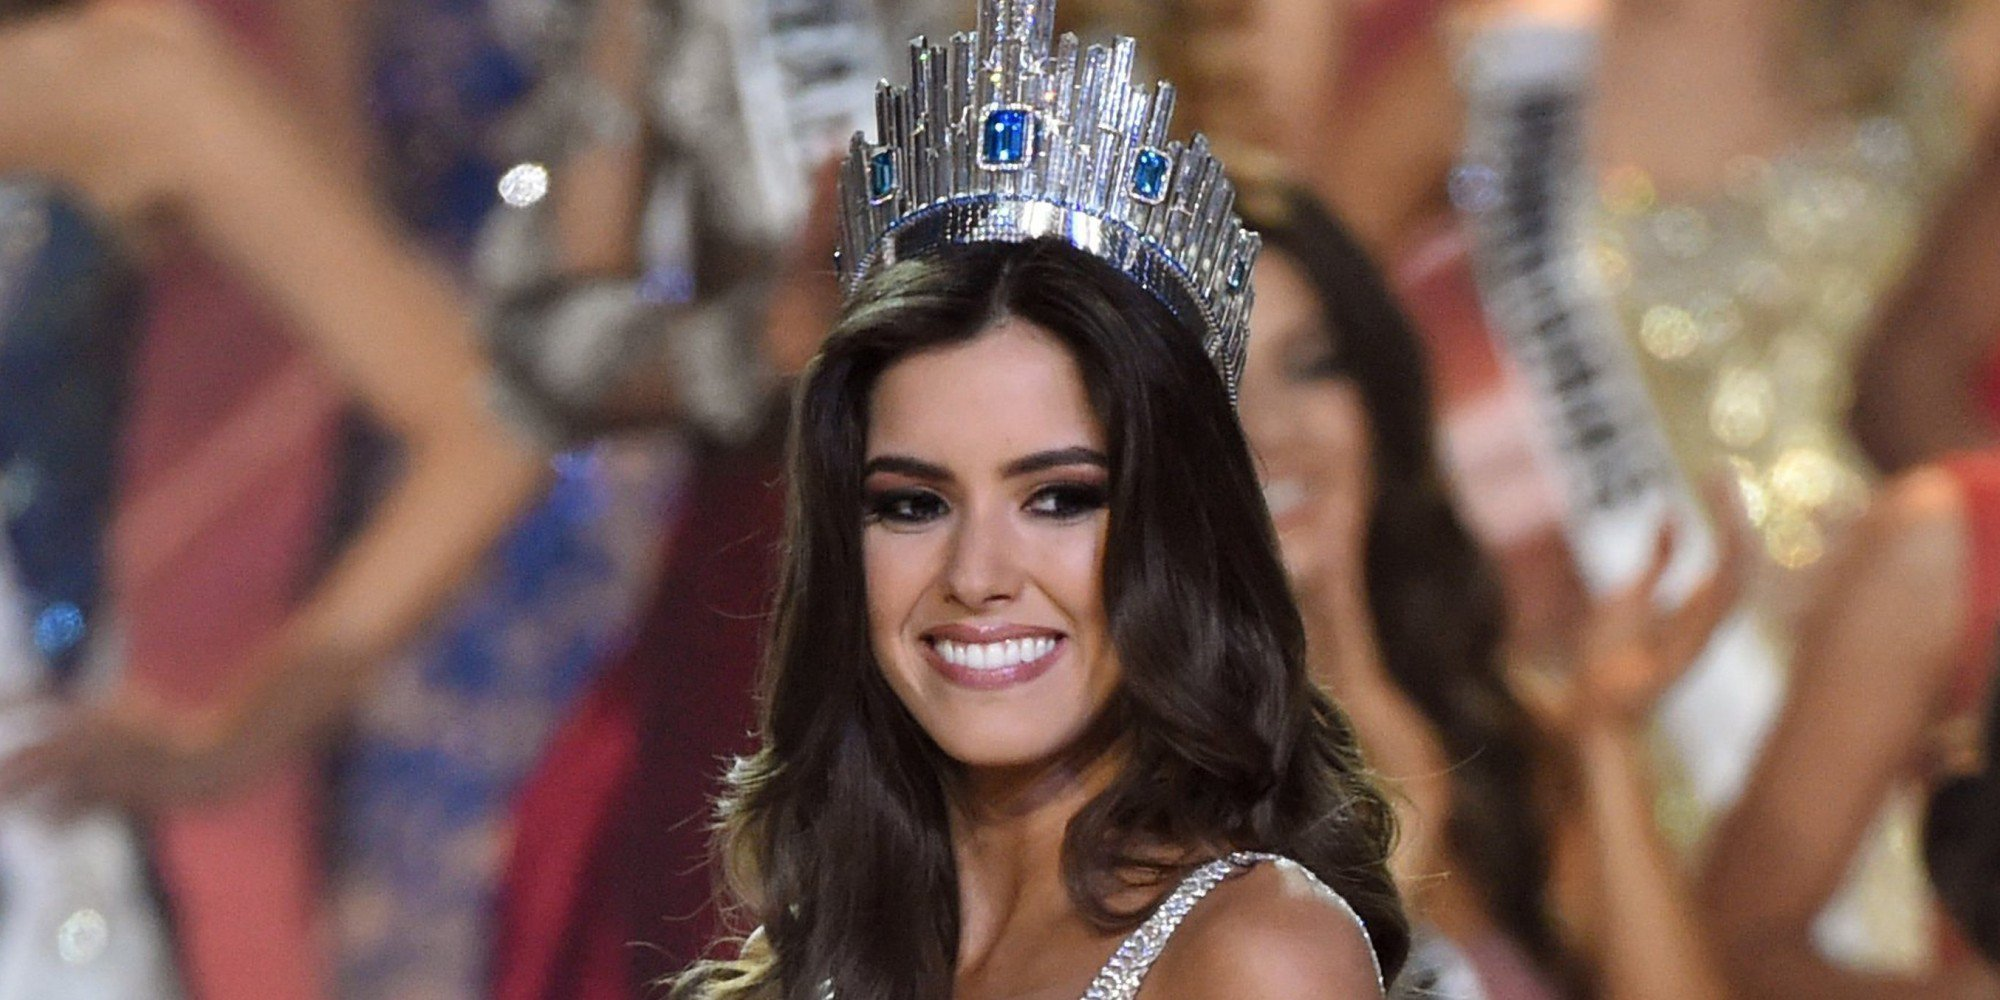 These 20 Countries Have The Highest Number Of Beauty Queens